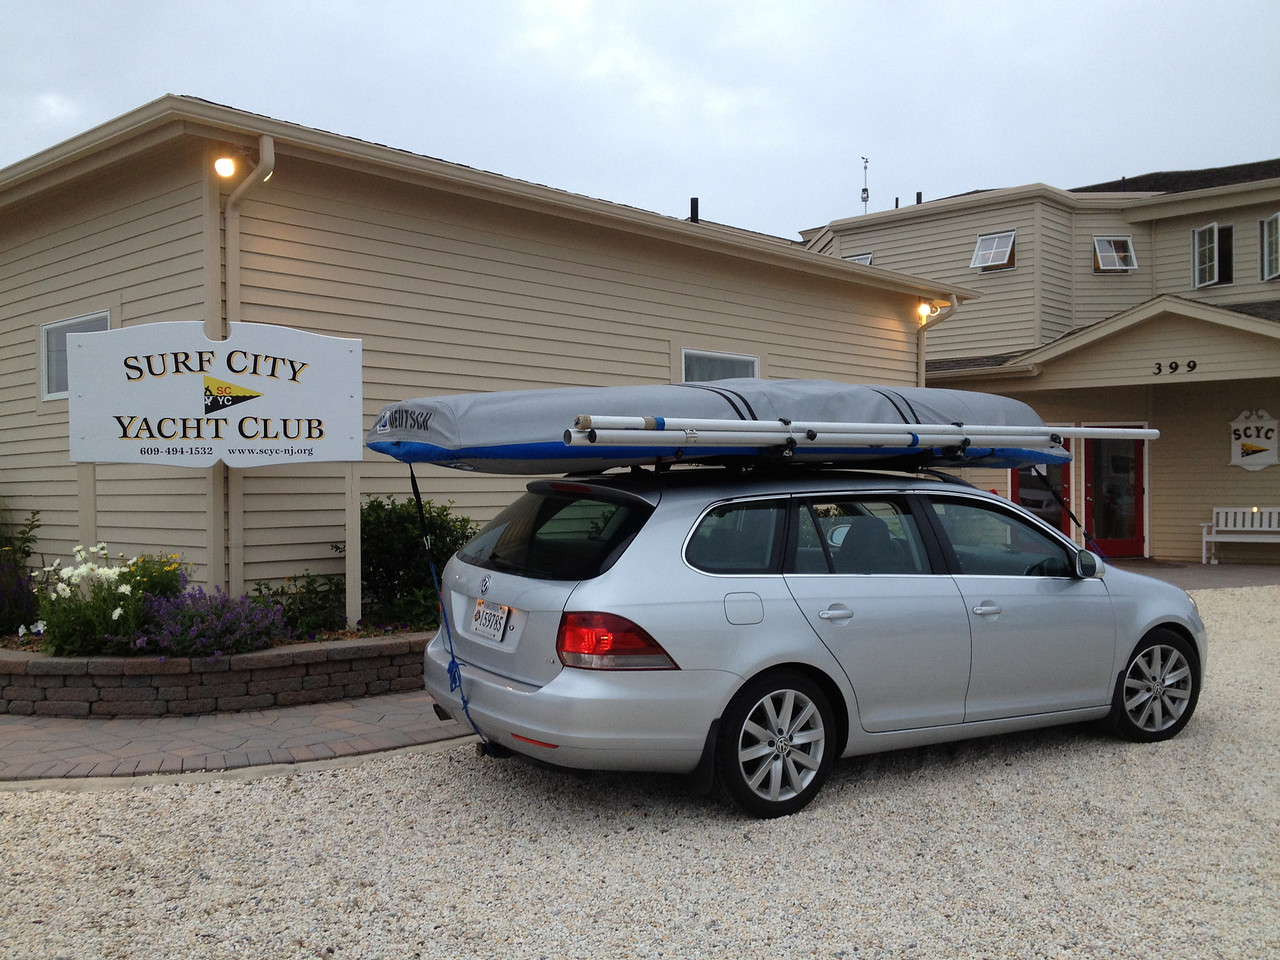 Arriving at Surf City Yacht Club